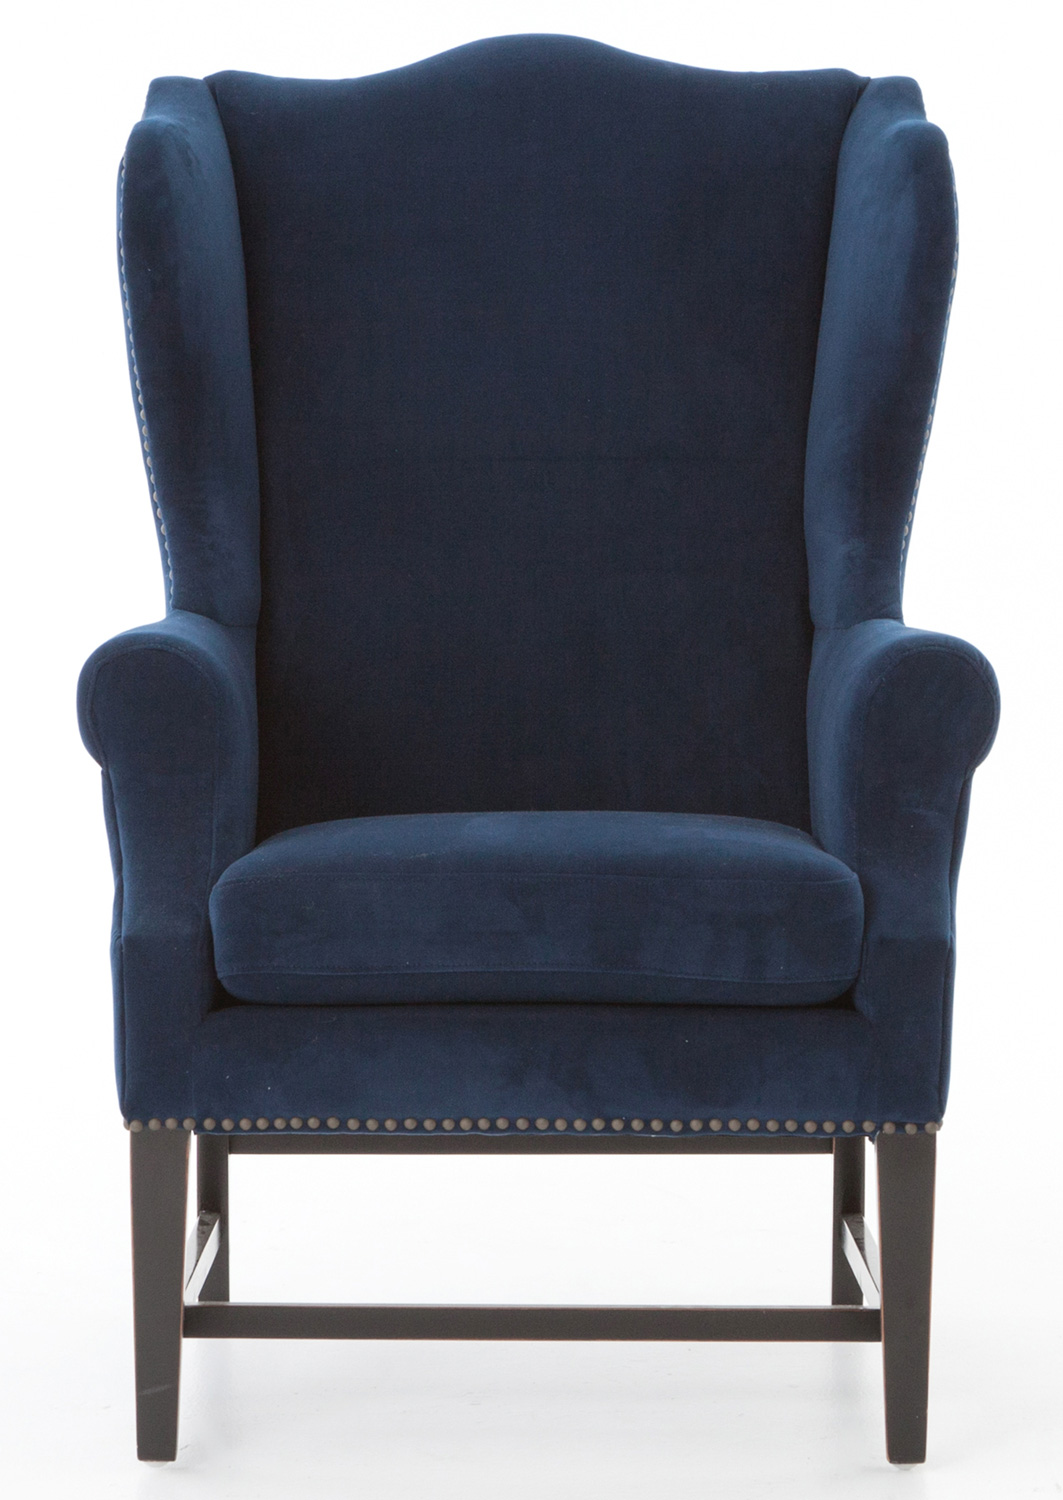 Four Hands Theory New Navy Wing Chair Csd 0026